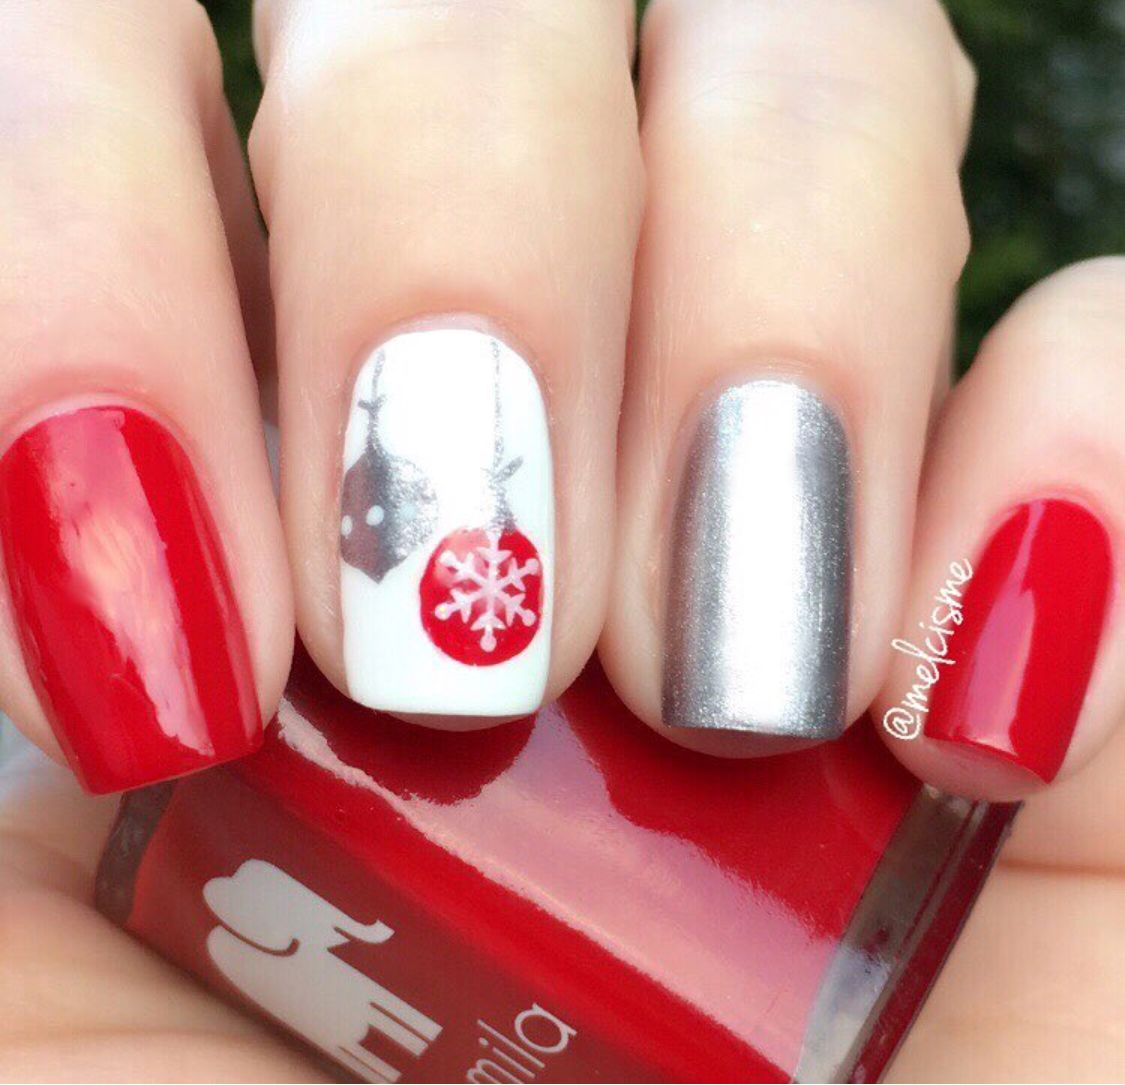 Getting into the holiday spirit with melcismes fabulous red getting into the holiday spirit with melcismes fabulous red white and silver manicure using prinsesfo Gallery